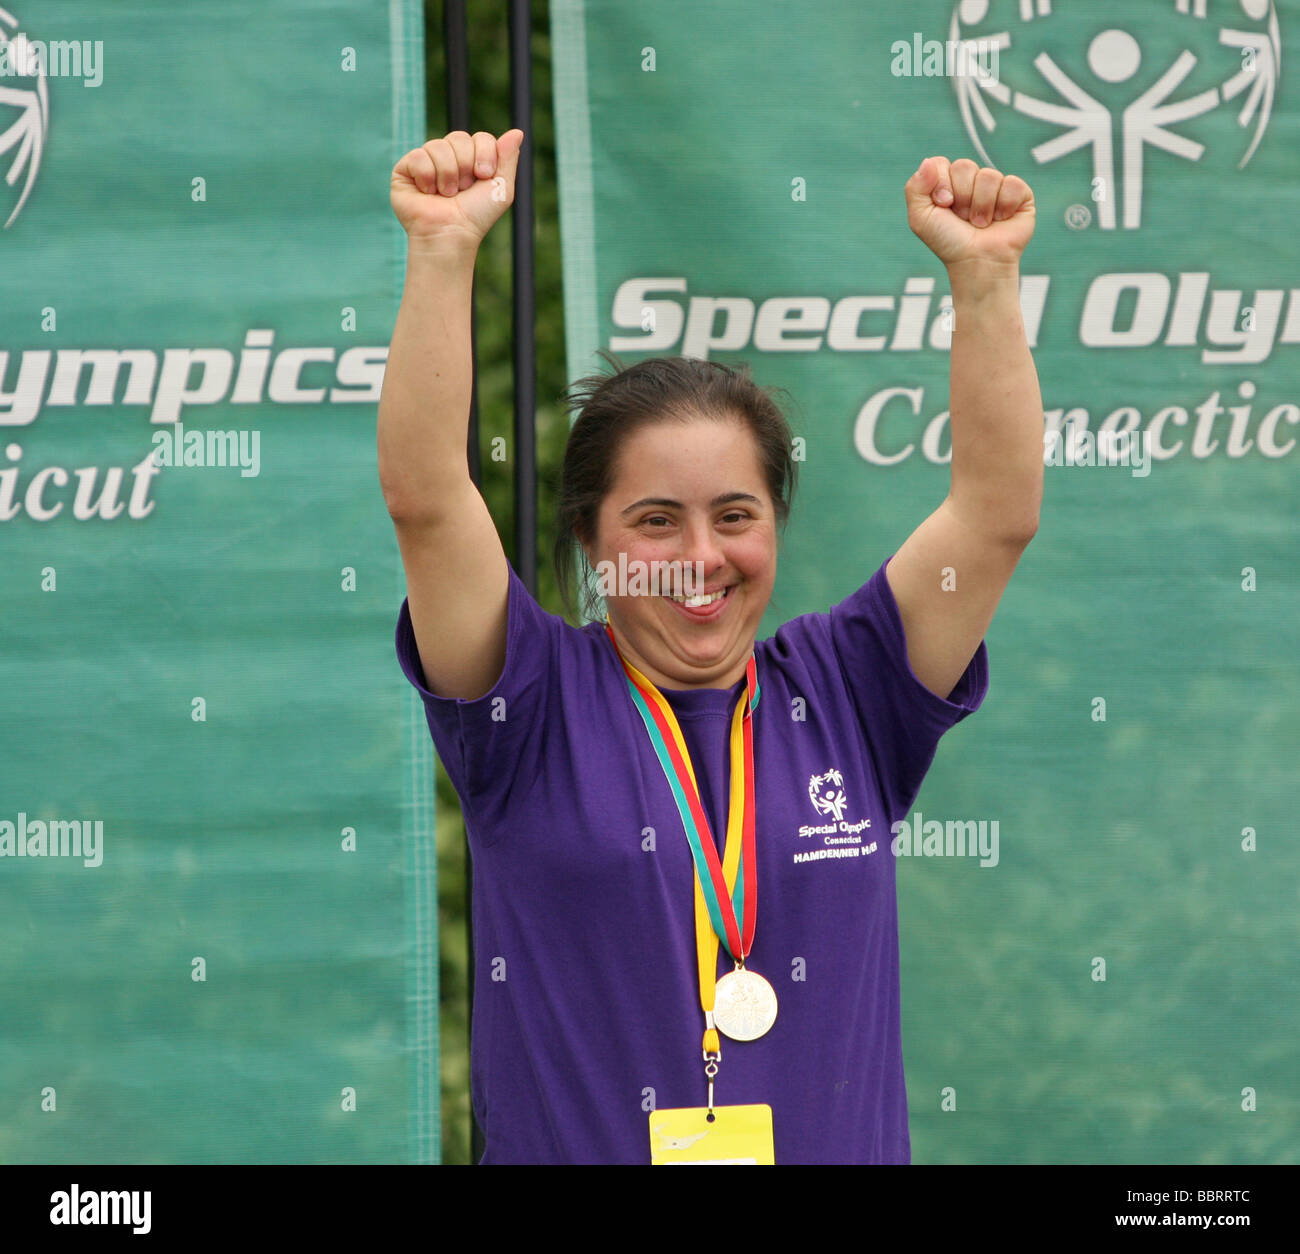 Connecticut USA Special Olympics awards ceremony Gold Medal winner - Stock Image